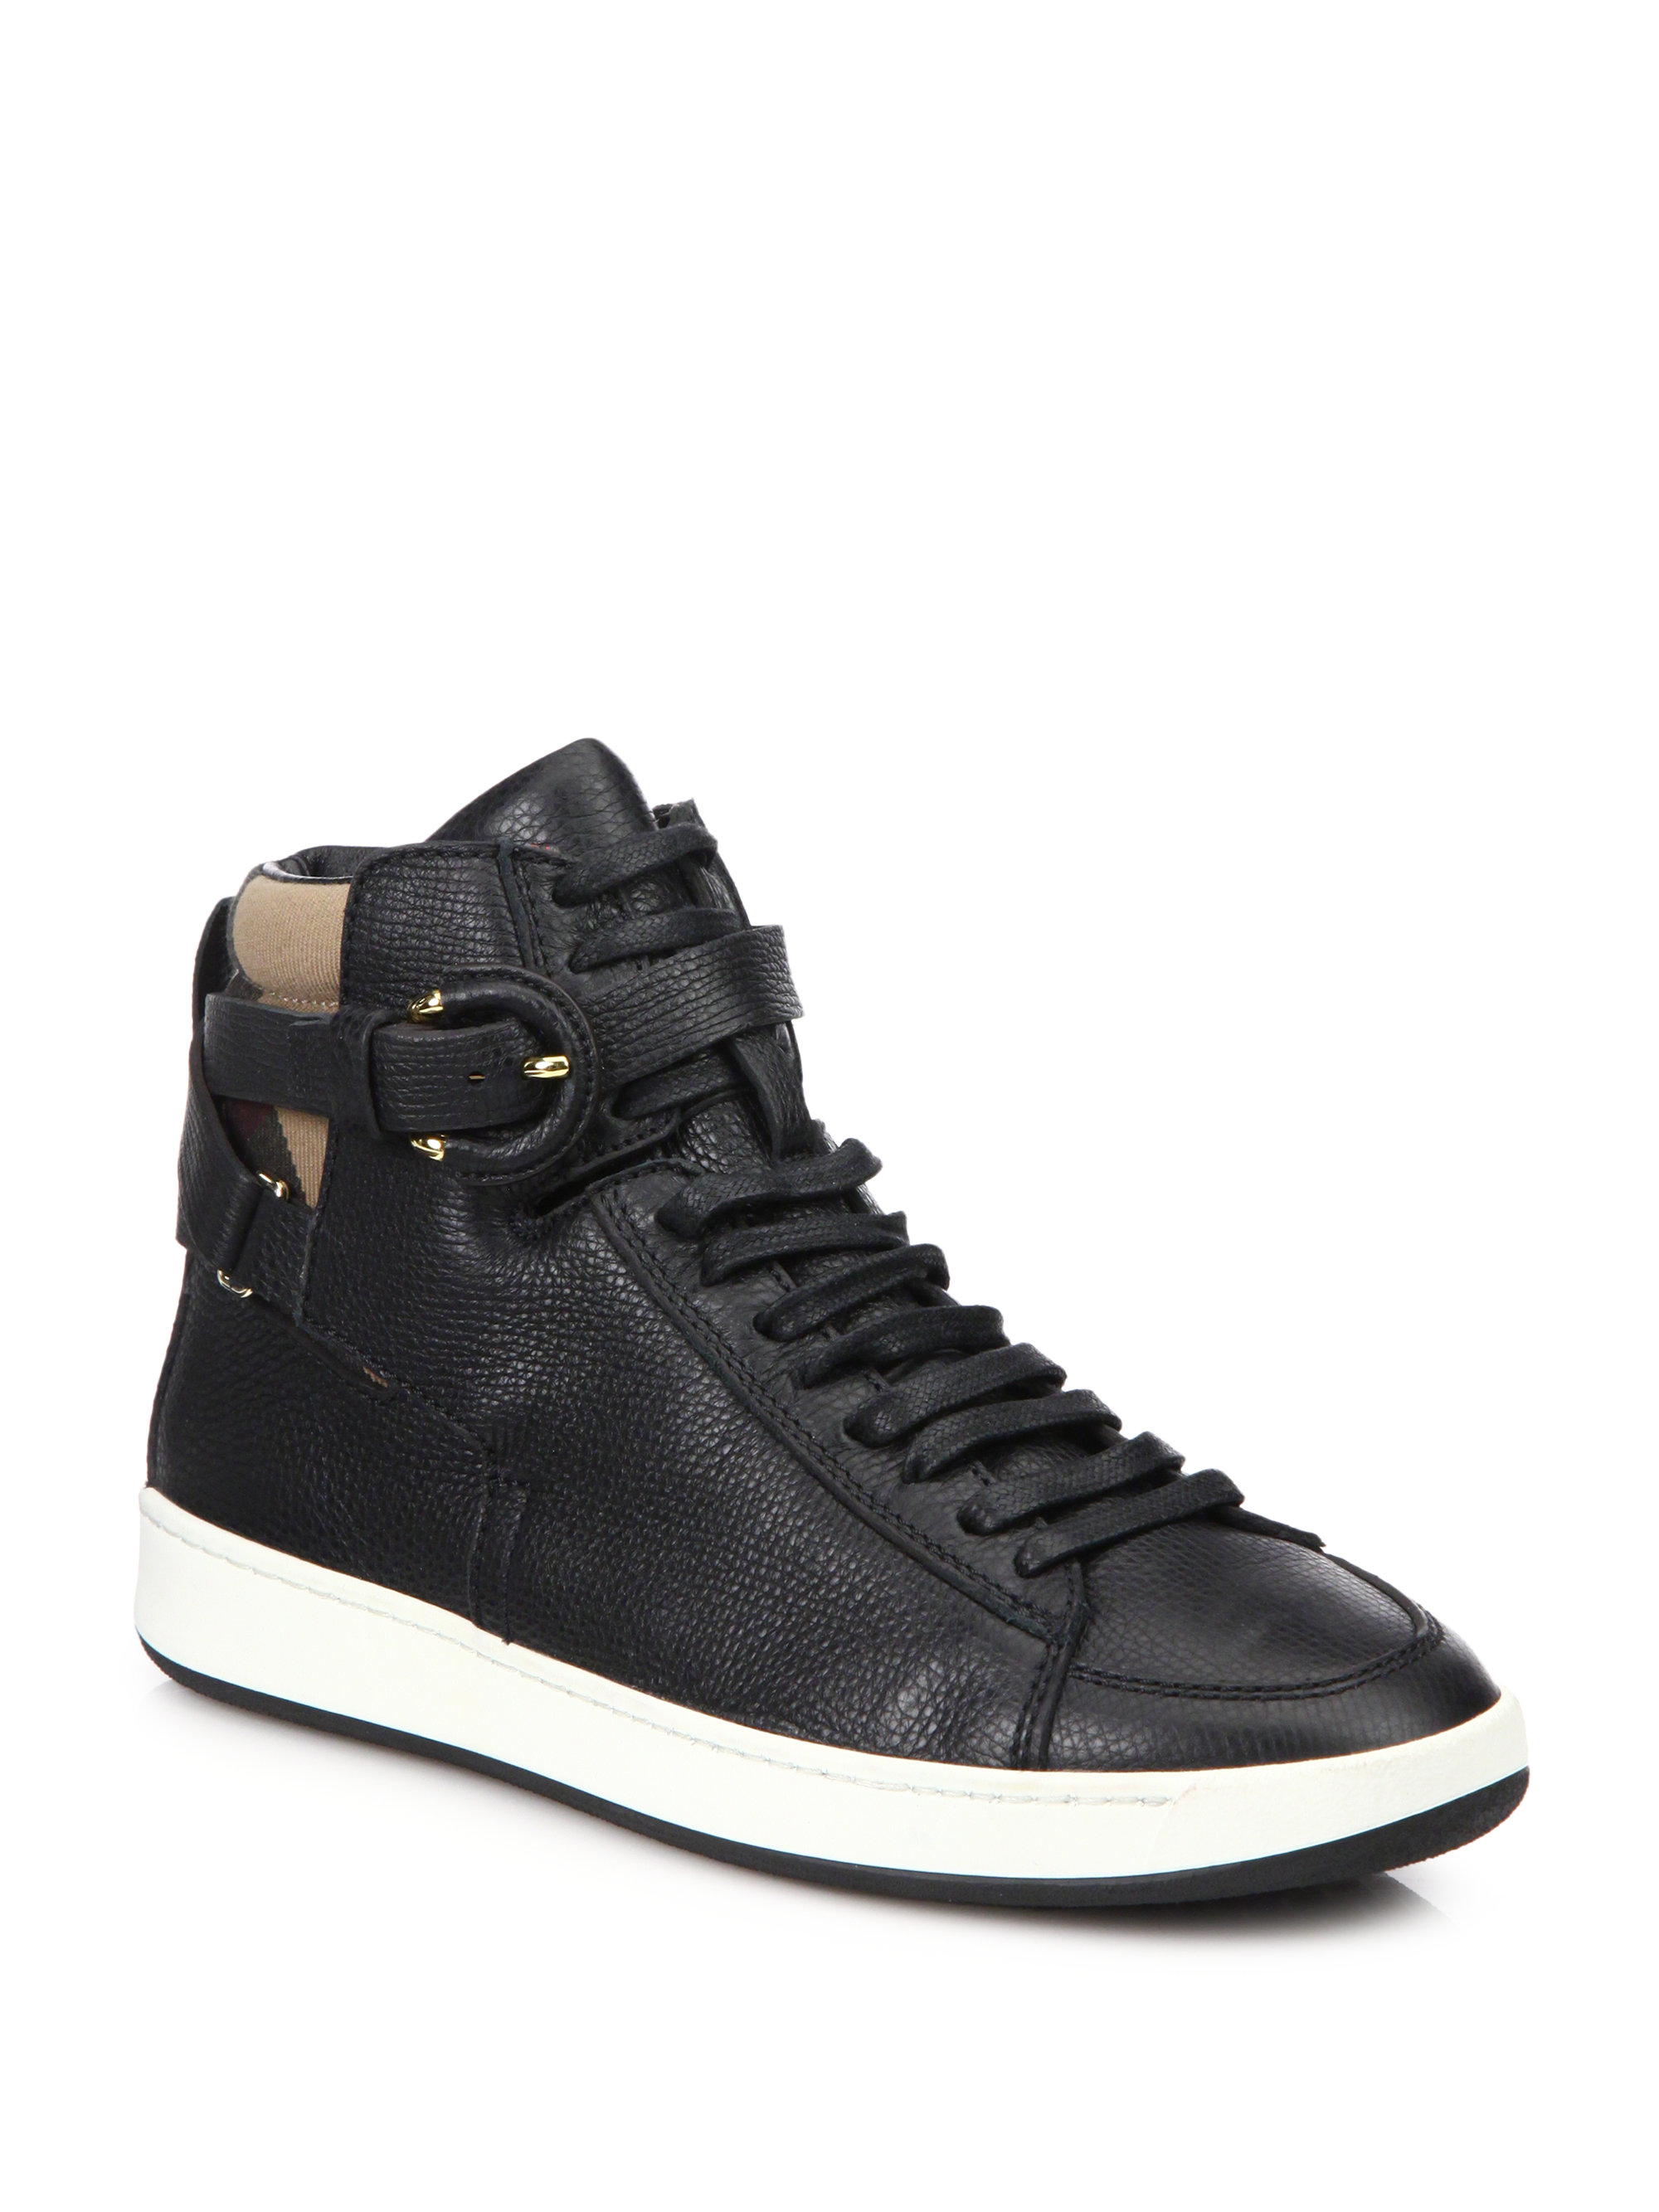 discount real largest supplier cheap price Burberry Leather High-Top Sneakers cheap sale enjoy online shop from china top quality cheap online xTdCtn7qmR